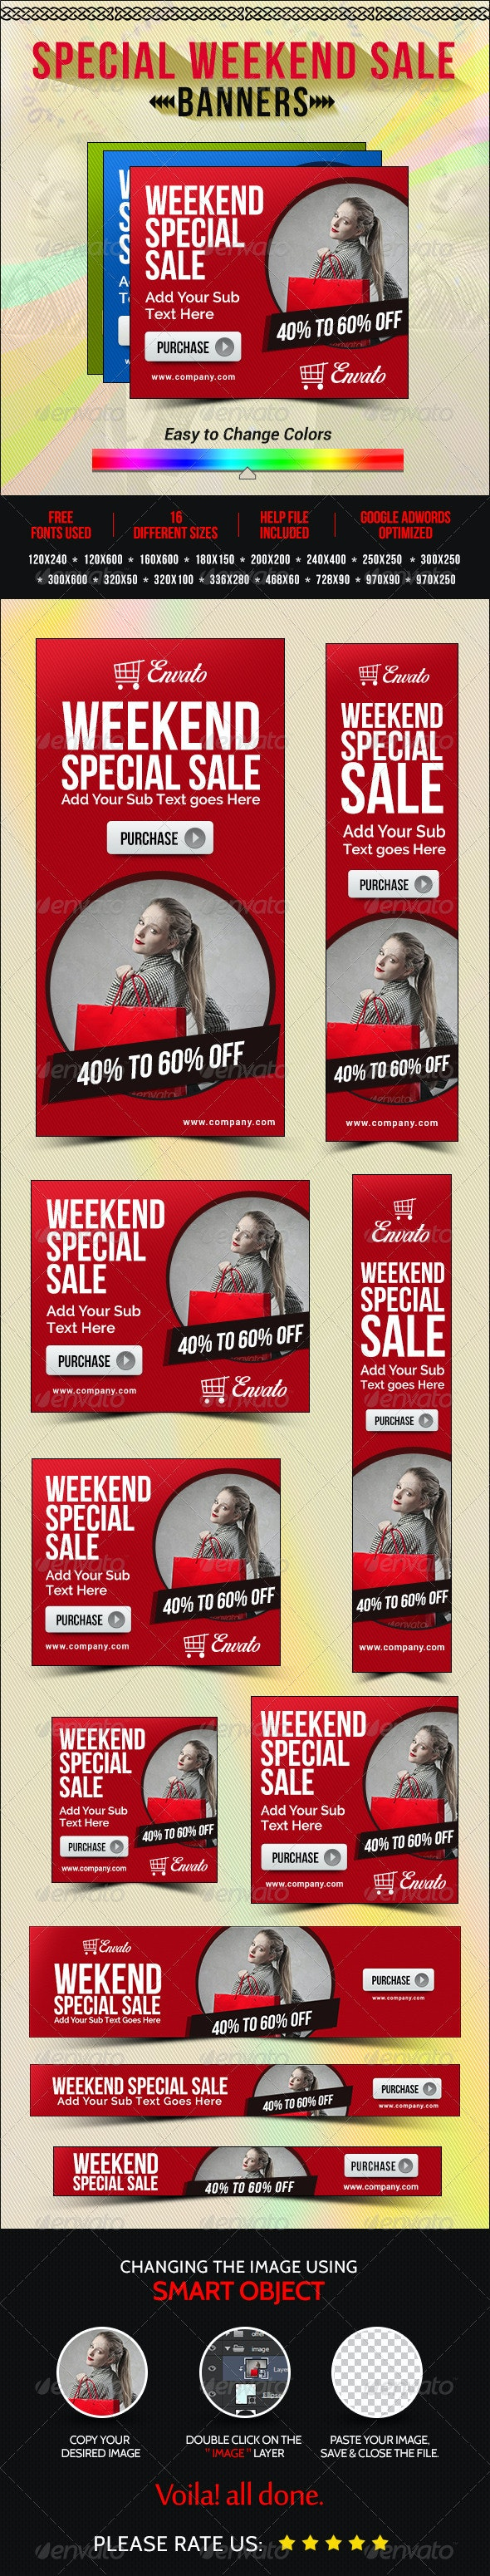 Weekend Sale Banners - Banners & Ads Web Elements